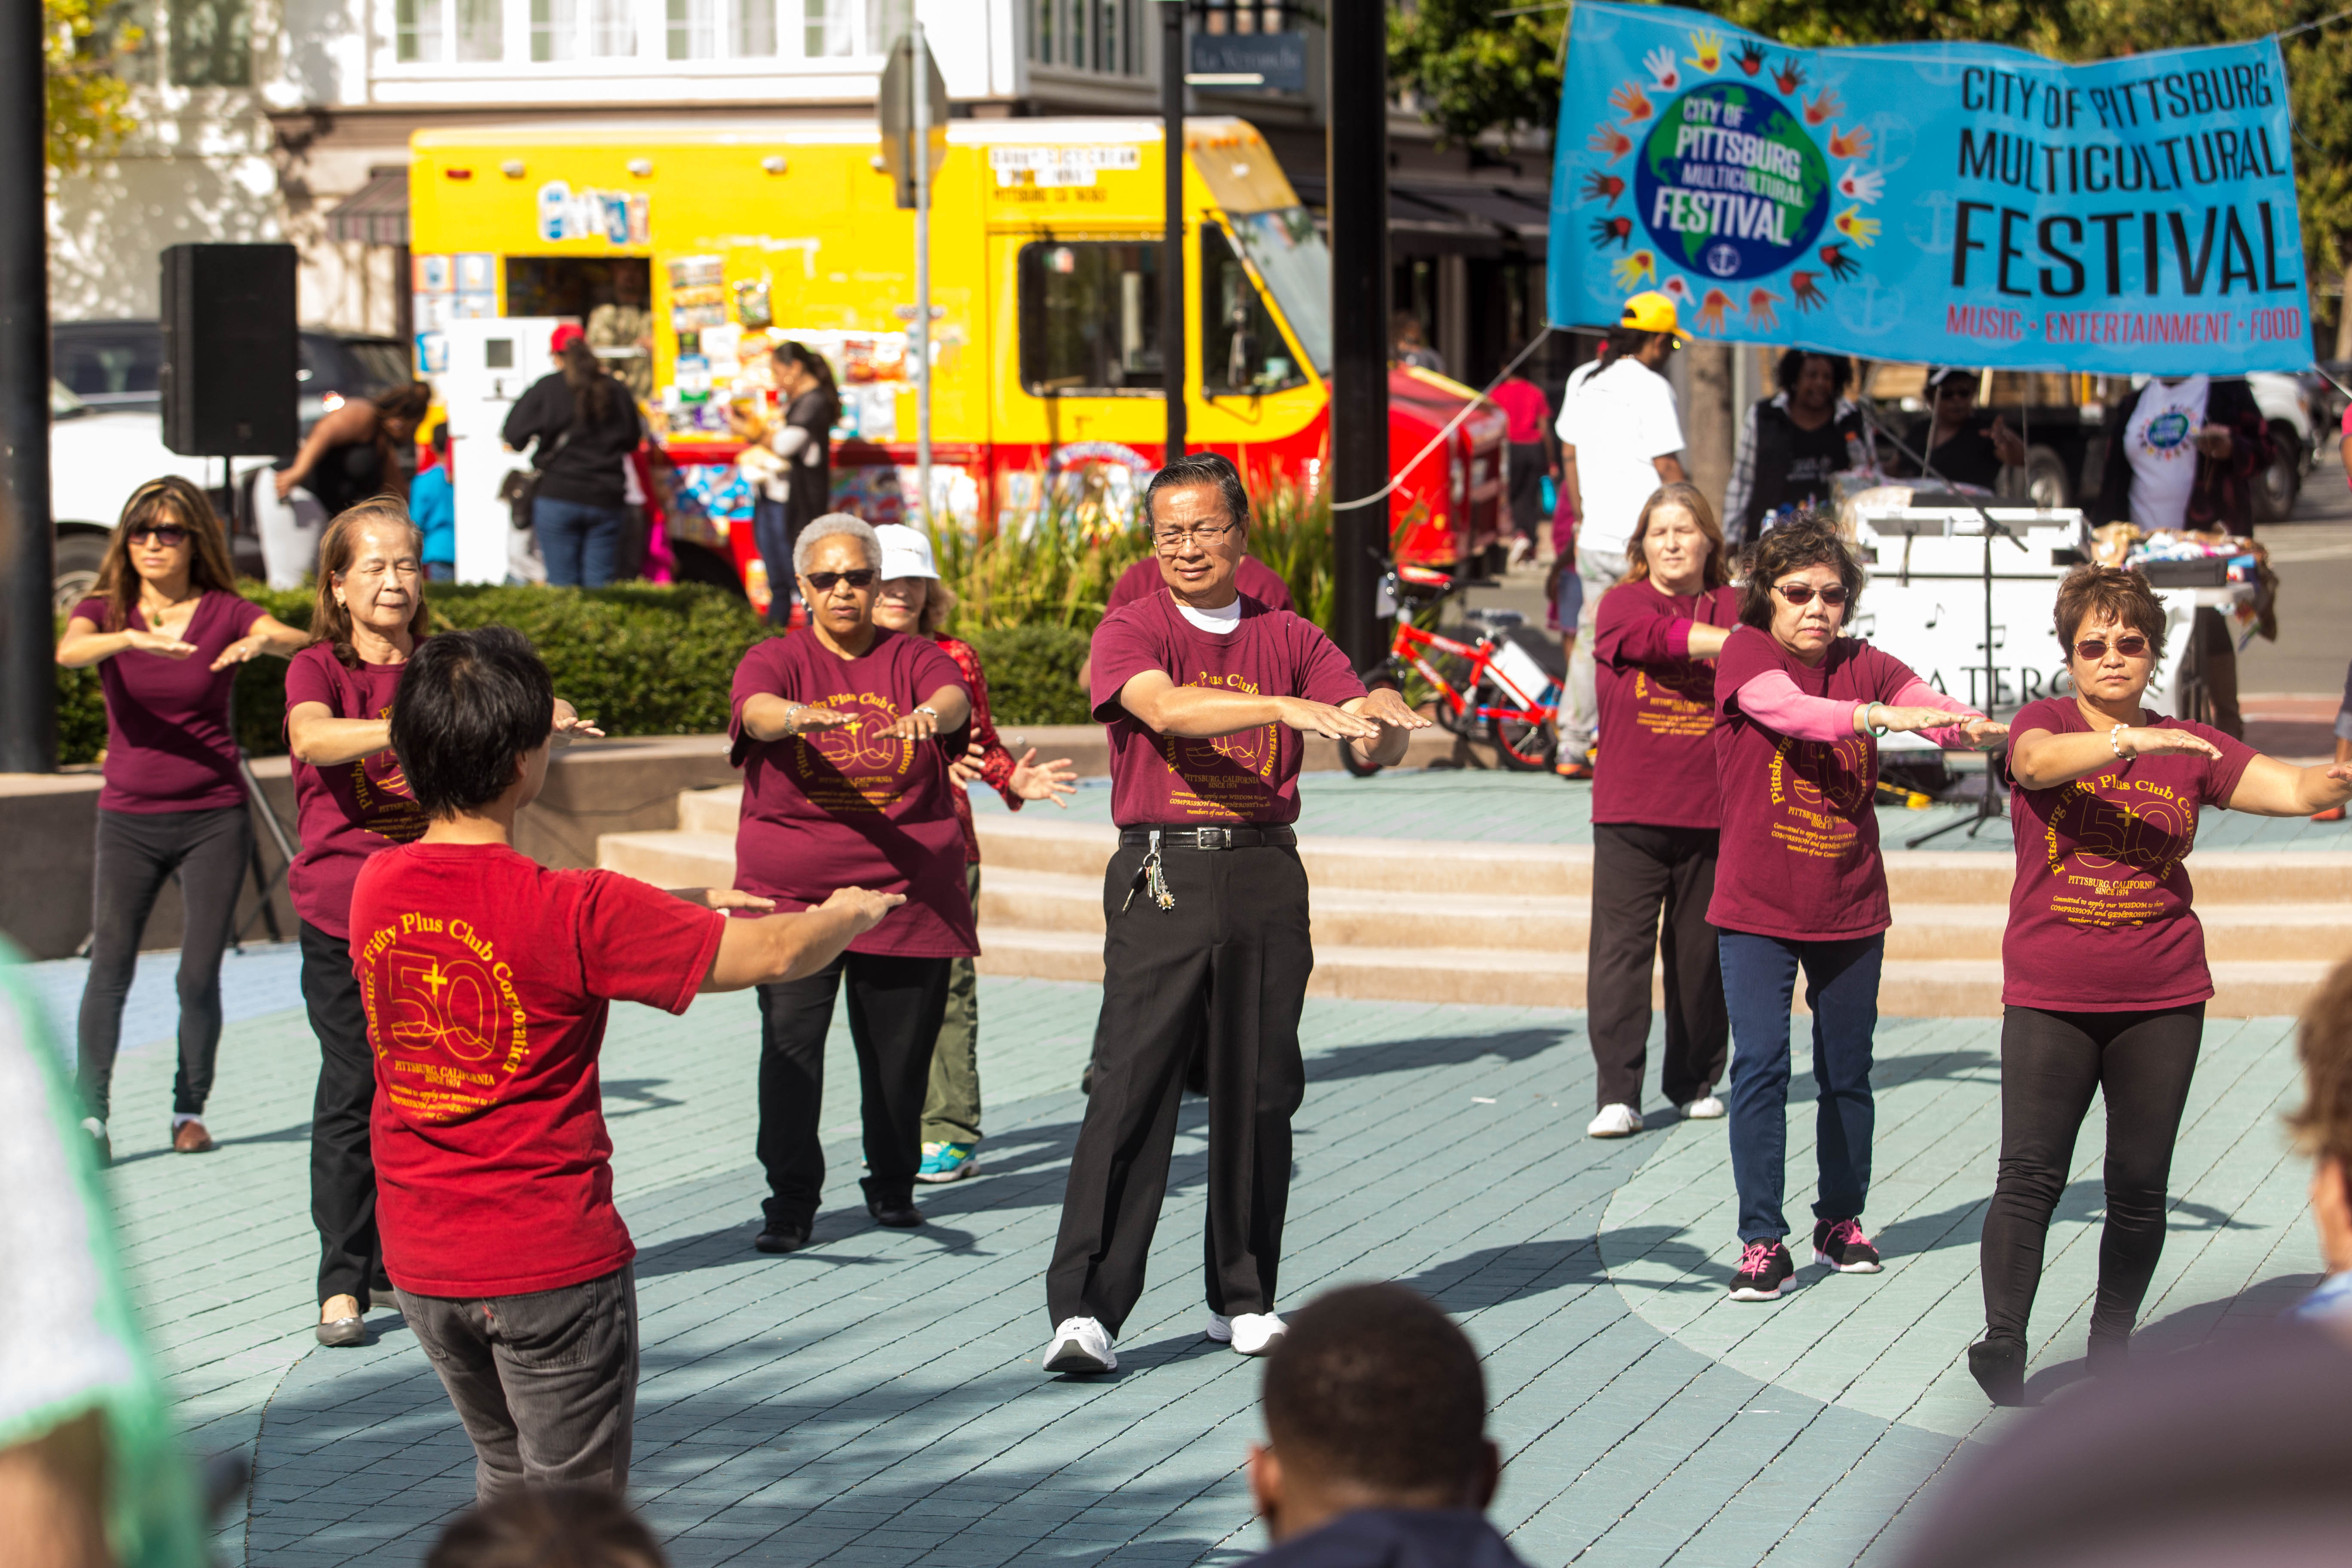 CITY_PITTSBURG_MULTICULTURAL_OCTOBER_2016 (519)